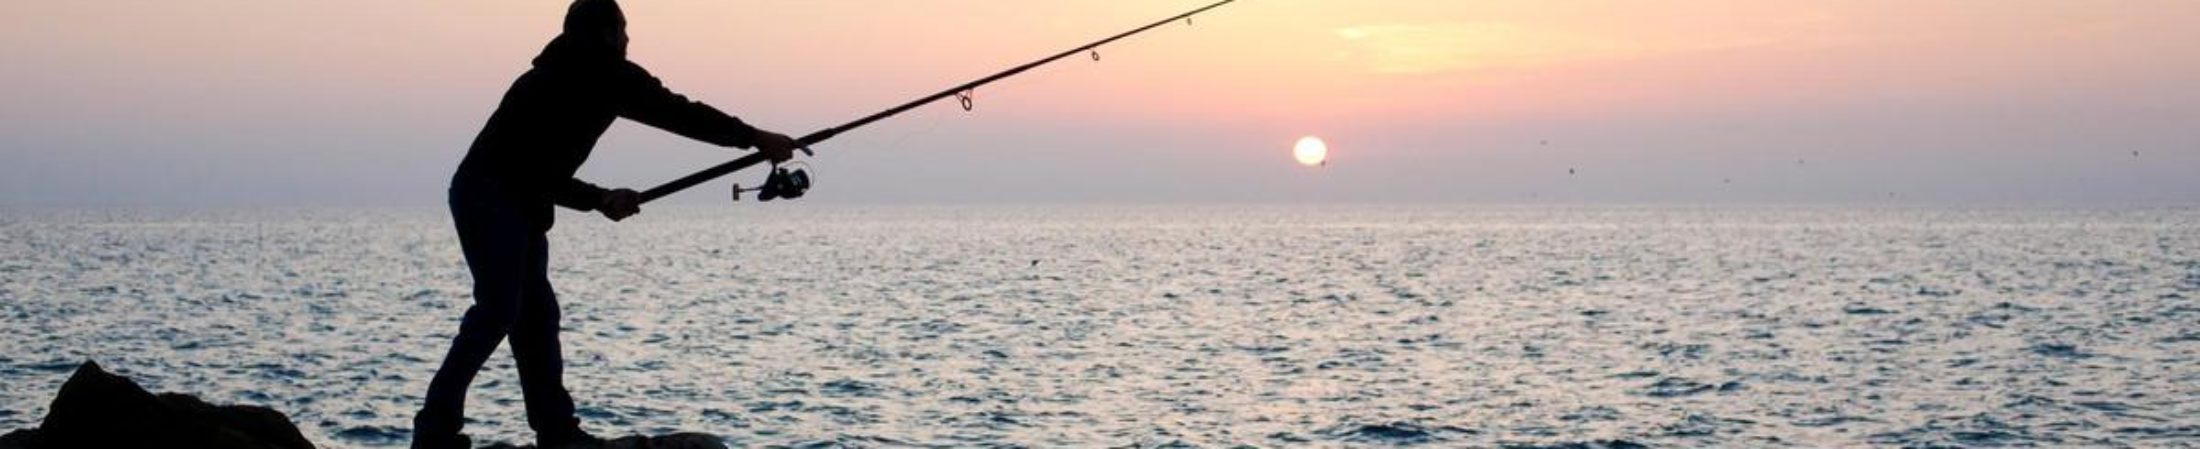 ULTIMATE SPORT FISHING BLOG